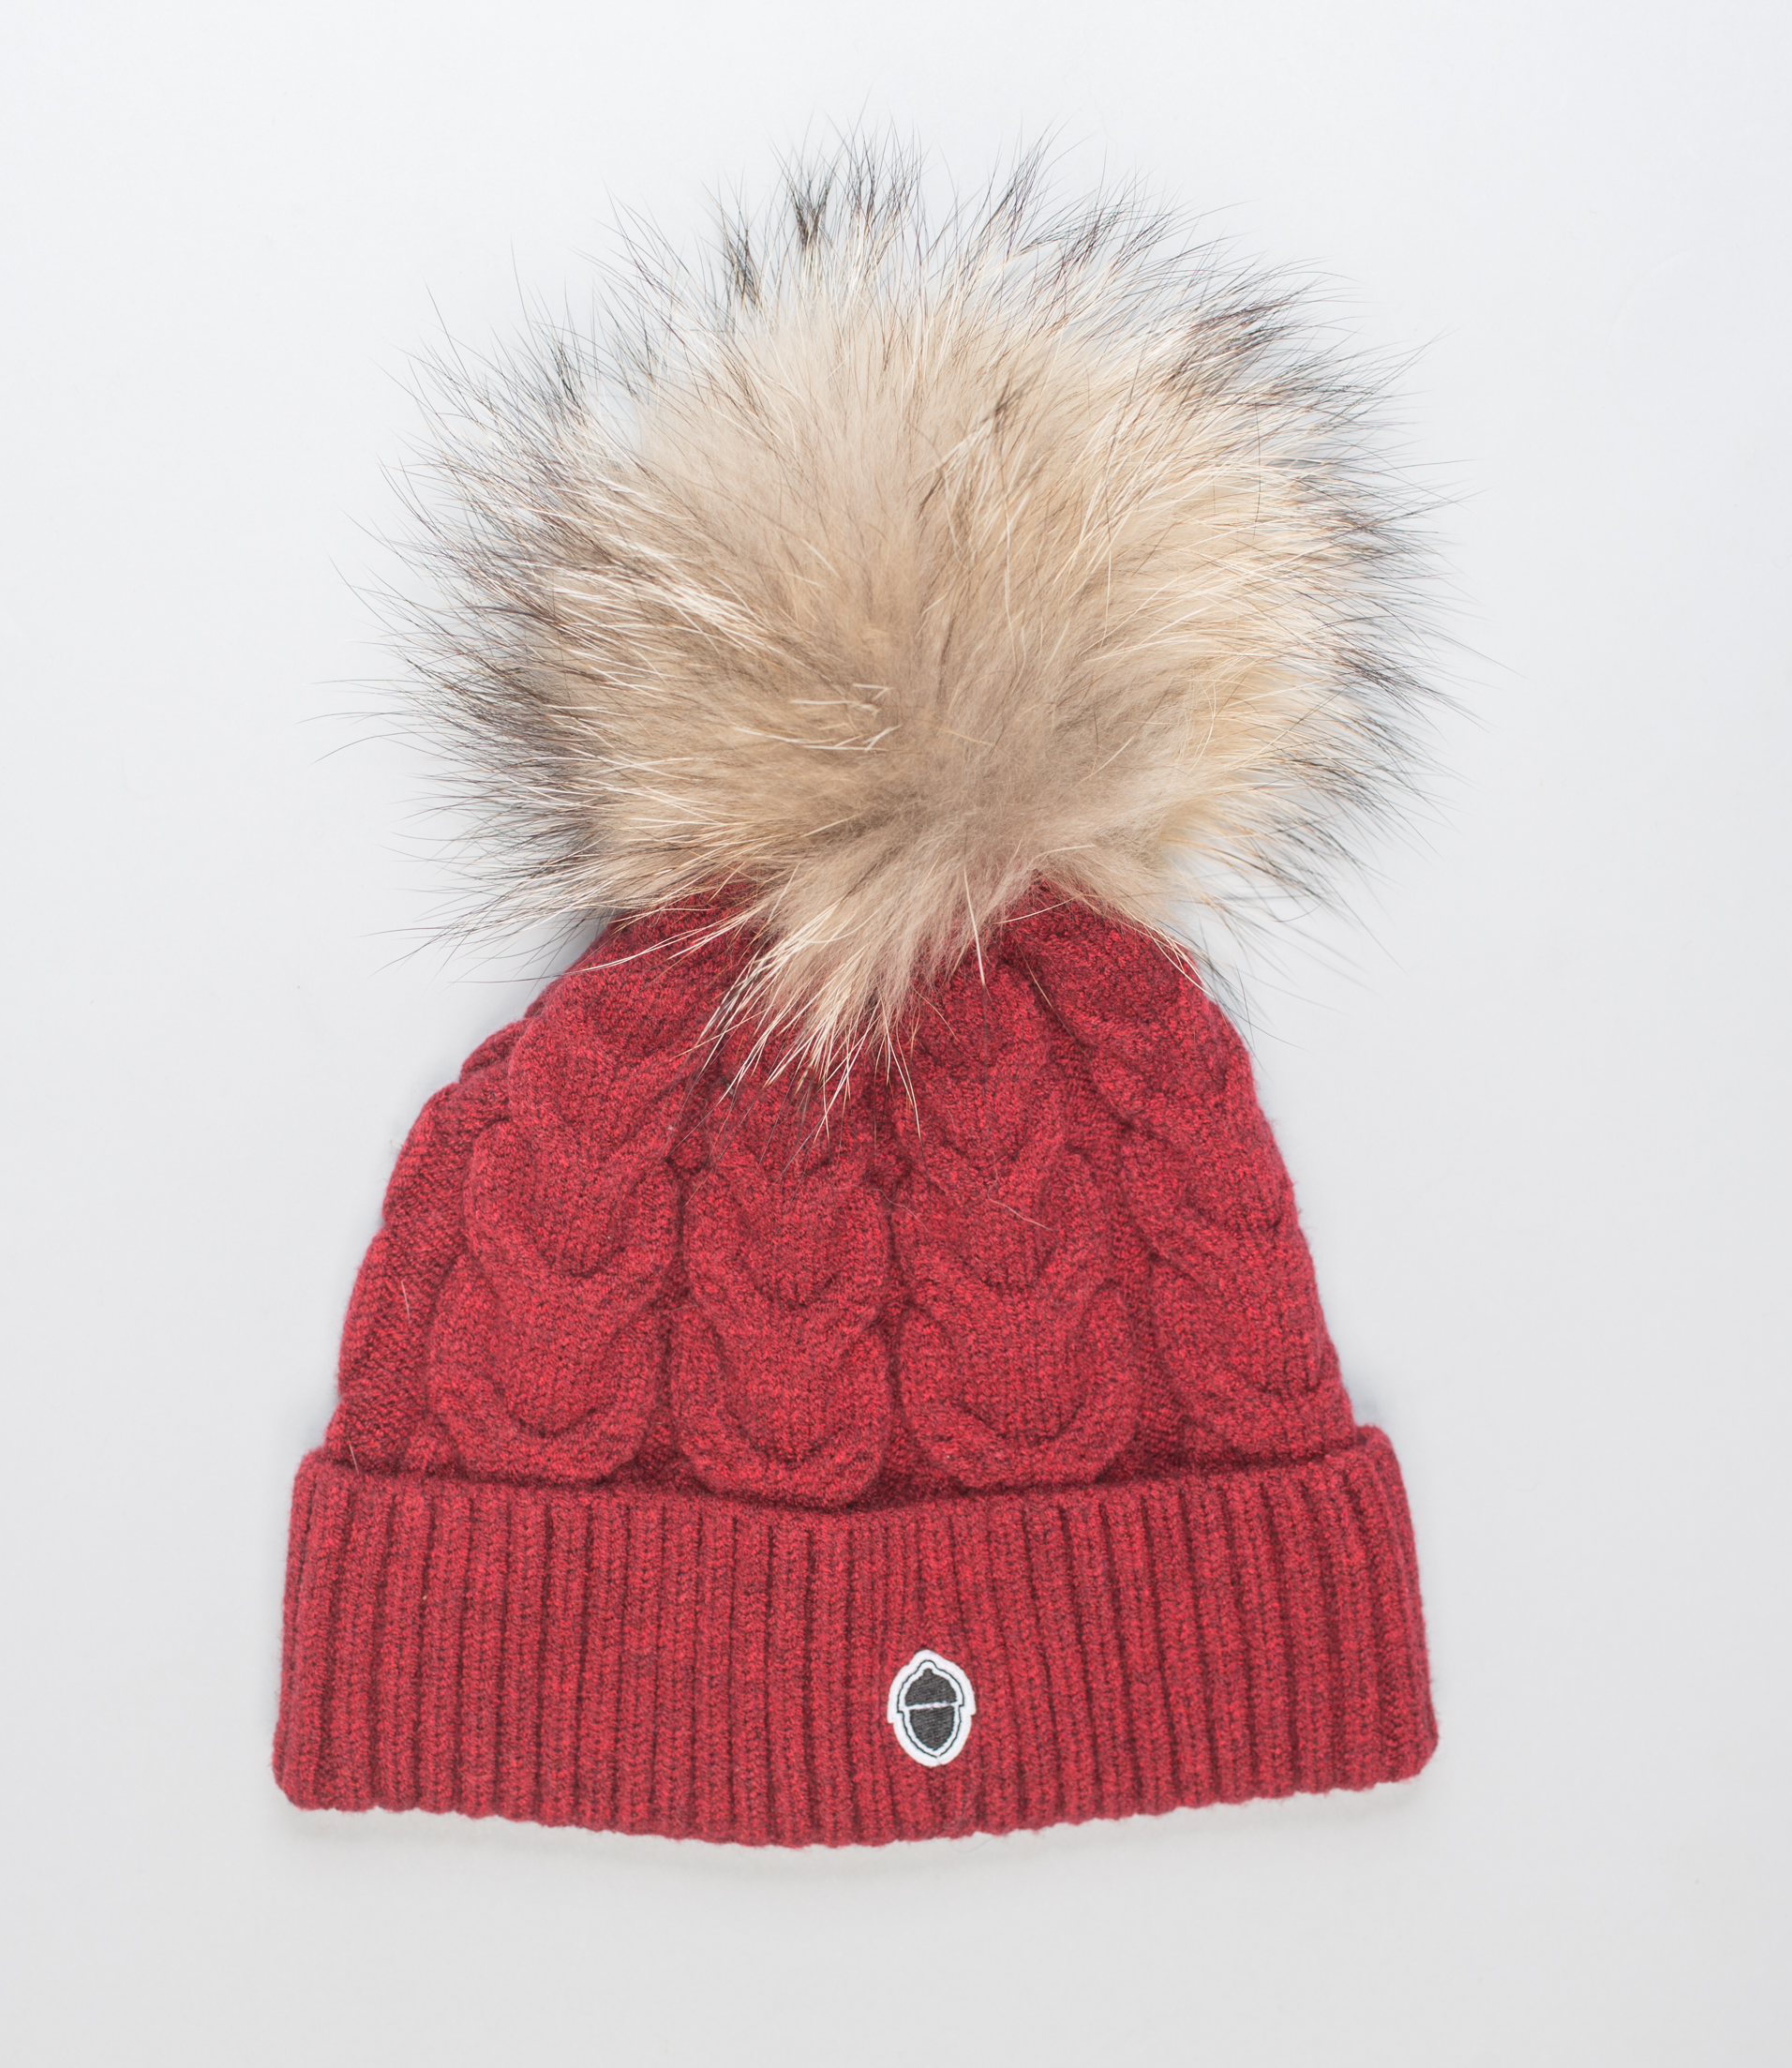 Bordeaux Beanie With Natural Fur Pom Pom I 100% Real Fur Hats 6d7aee81c7c